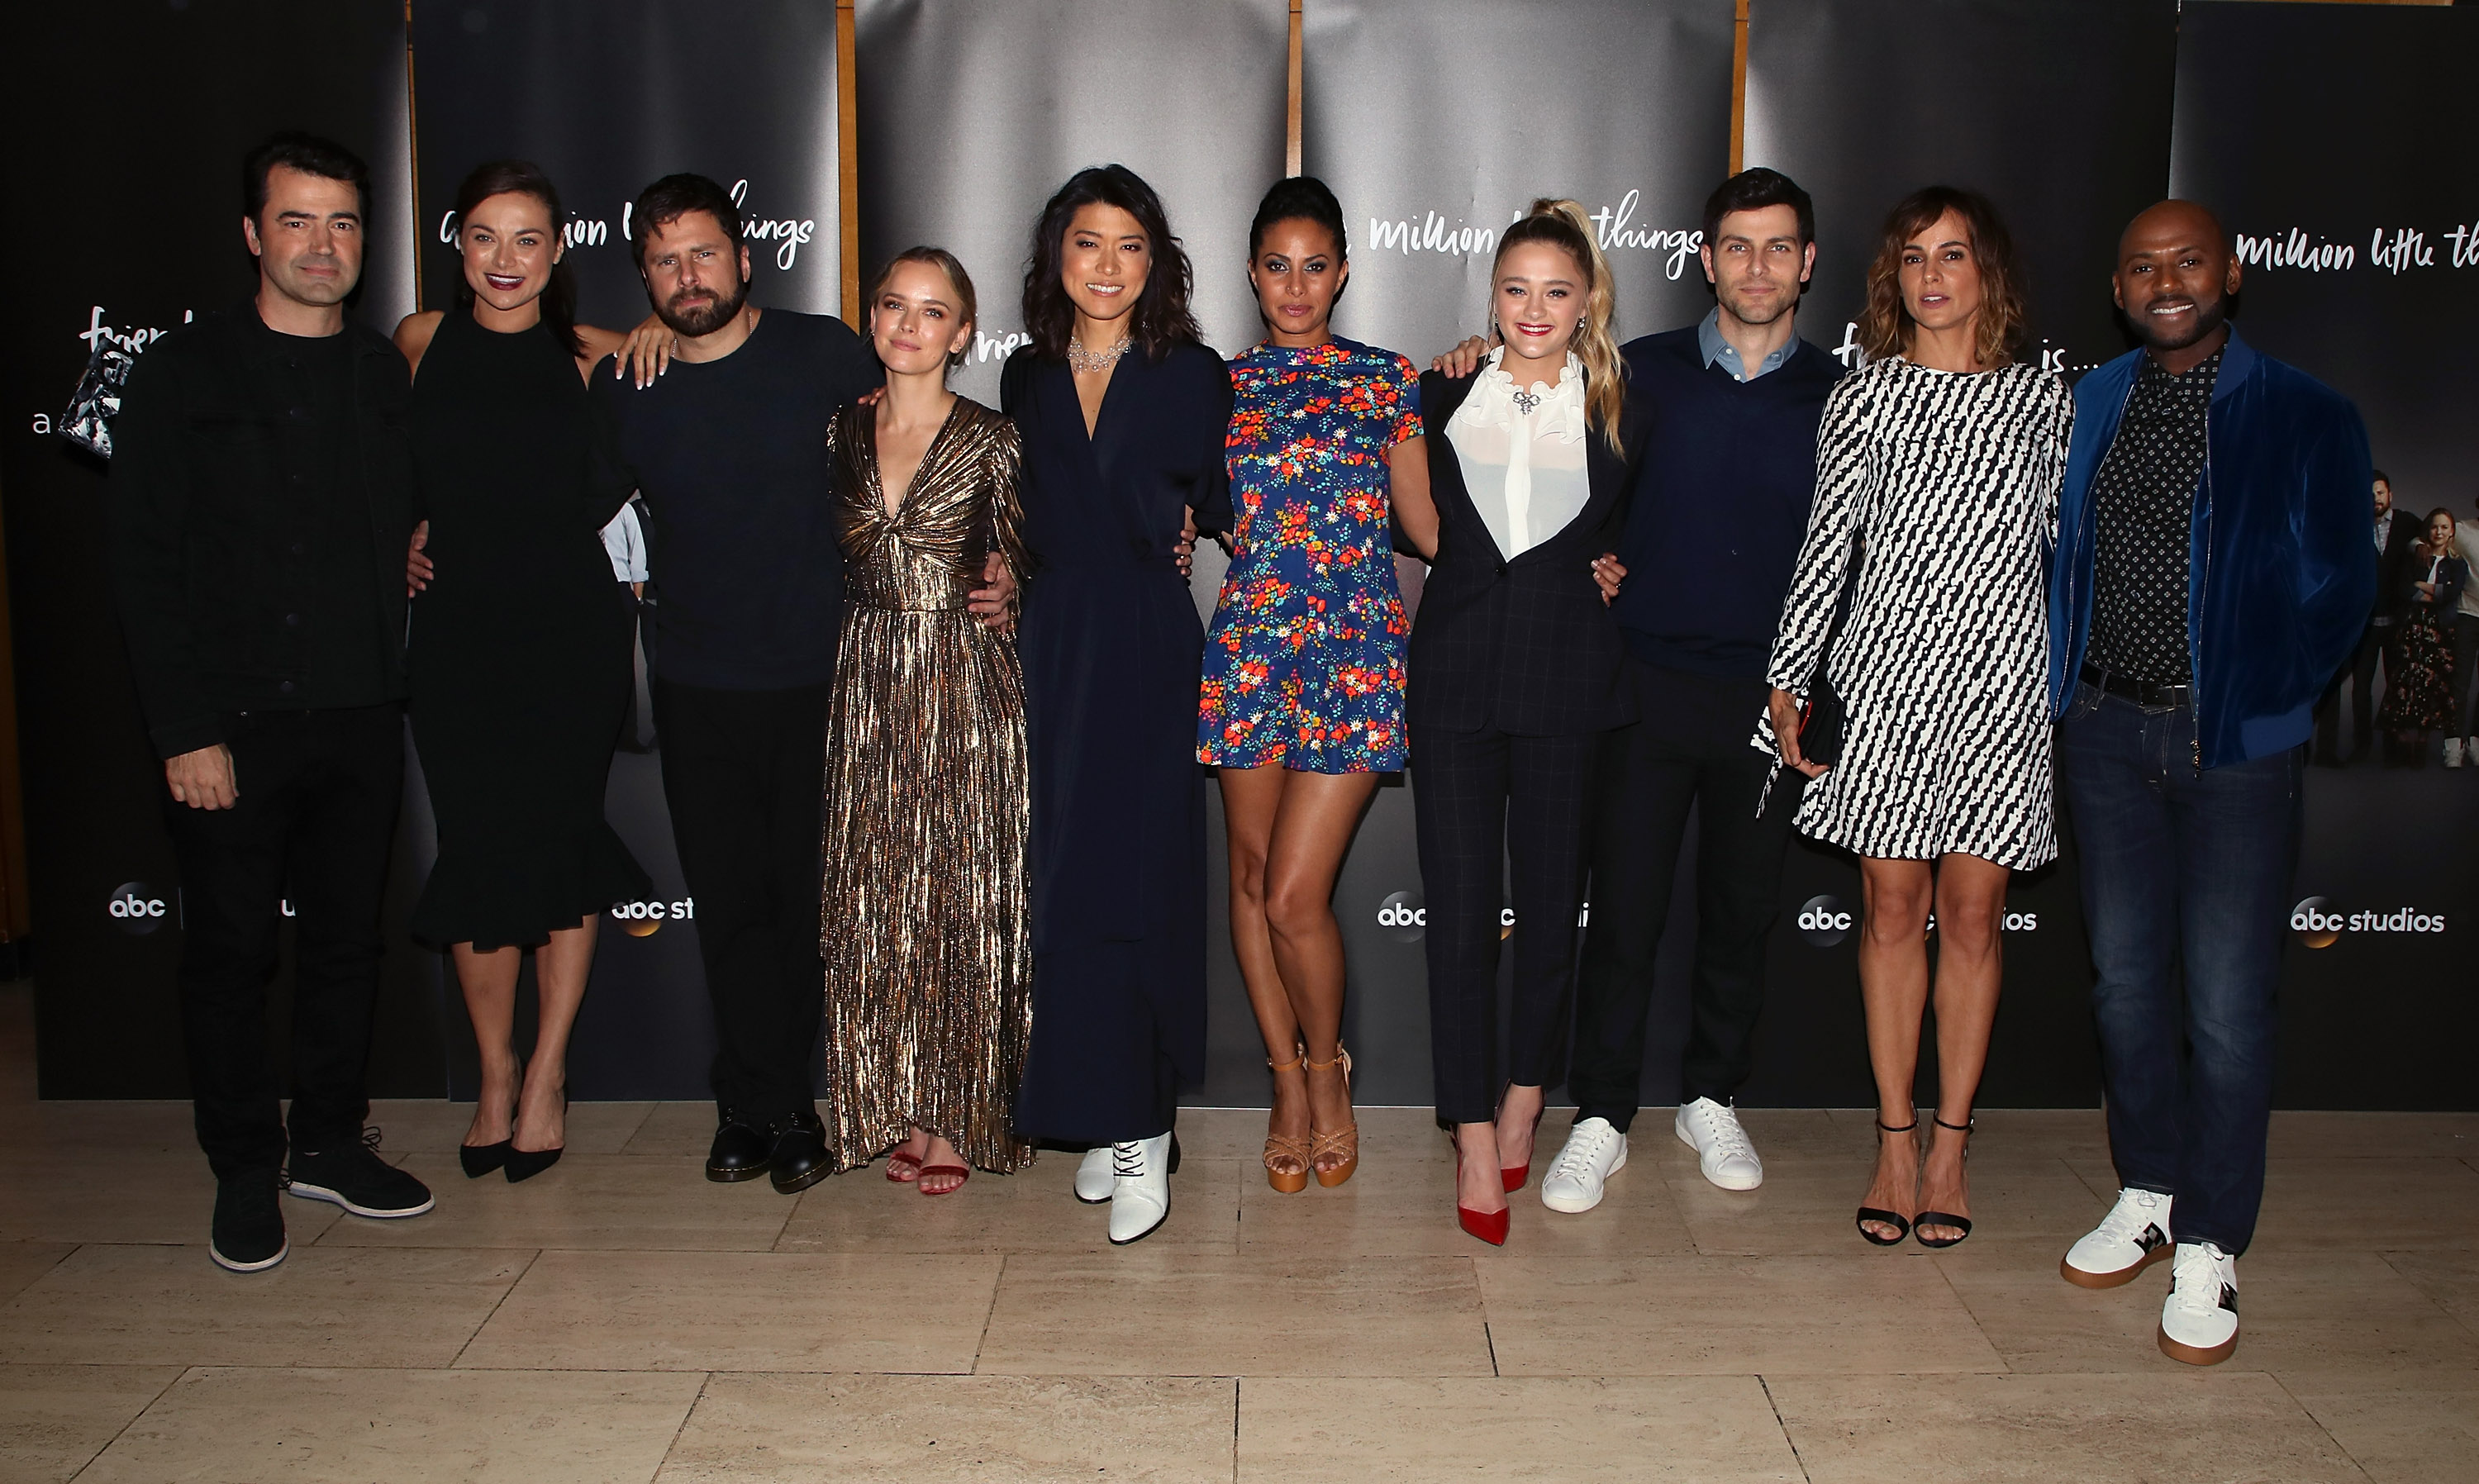 (L-R) Ron Livingston, Christina Ochoa, James Roday, Allison Miller, Grace Park, Christina Marie Moses, Lizzy Greene, David Giuntoli, Stephanie Szostak and Romany Malco attend the premiere of ABC's 'A Million Little Things' at LACMA on September 22, 2018 in Los Angeles, California.